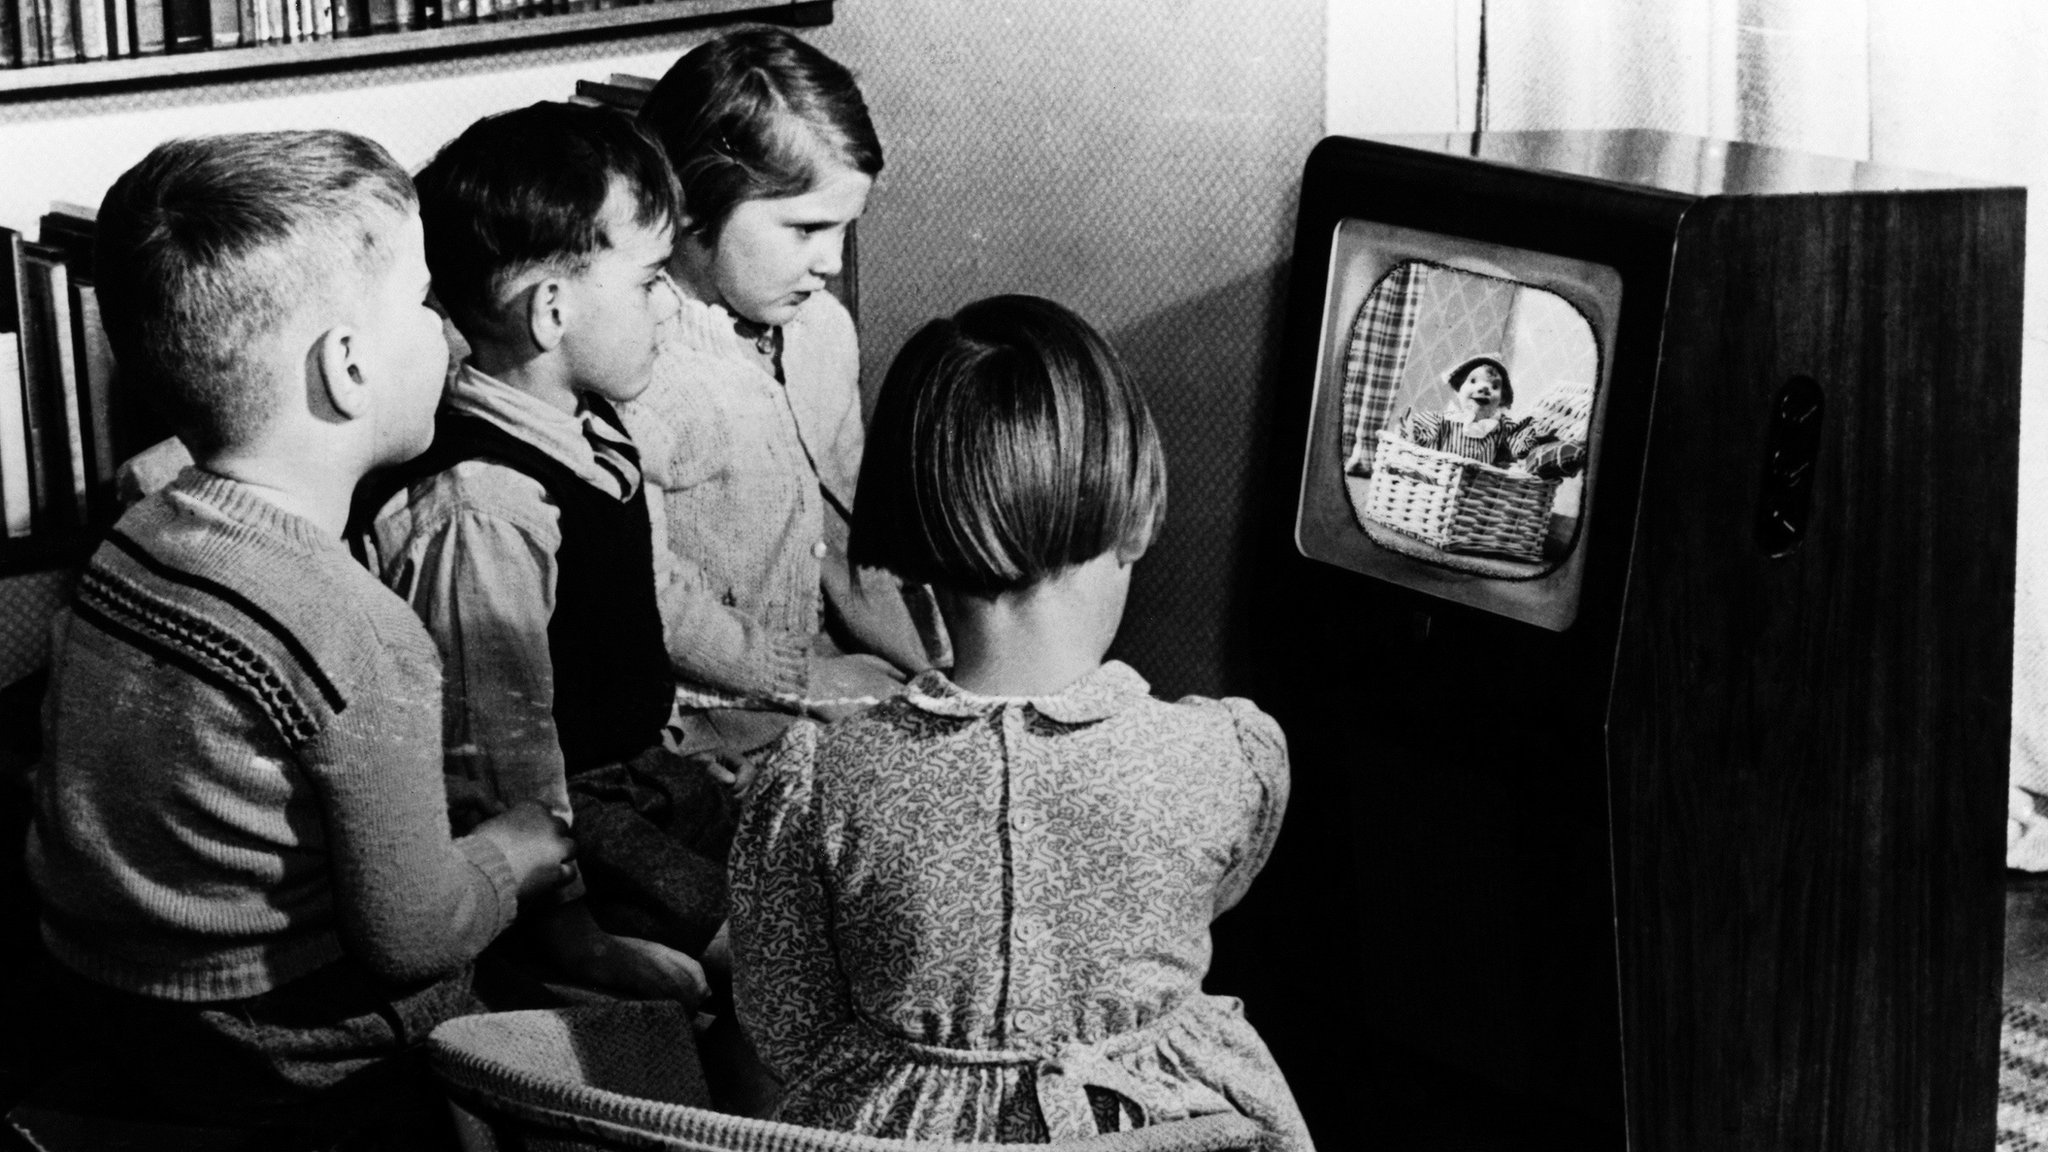 Thousands still watch TV in black and white